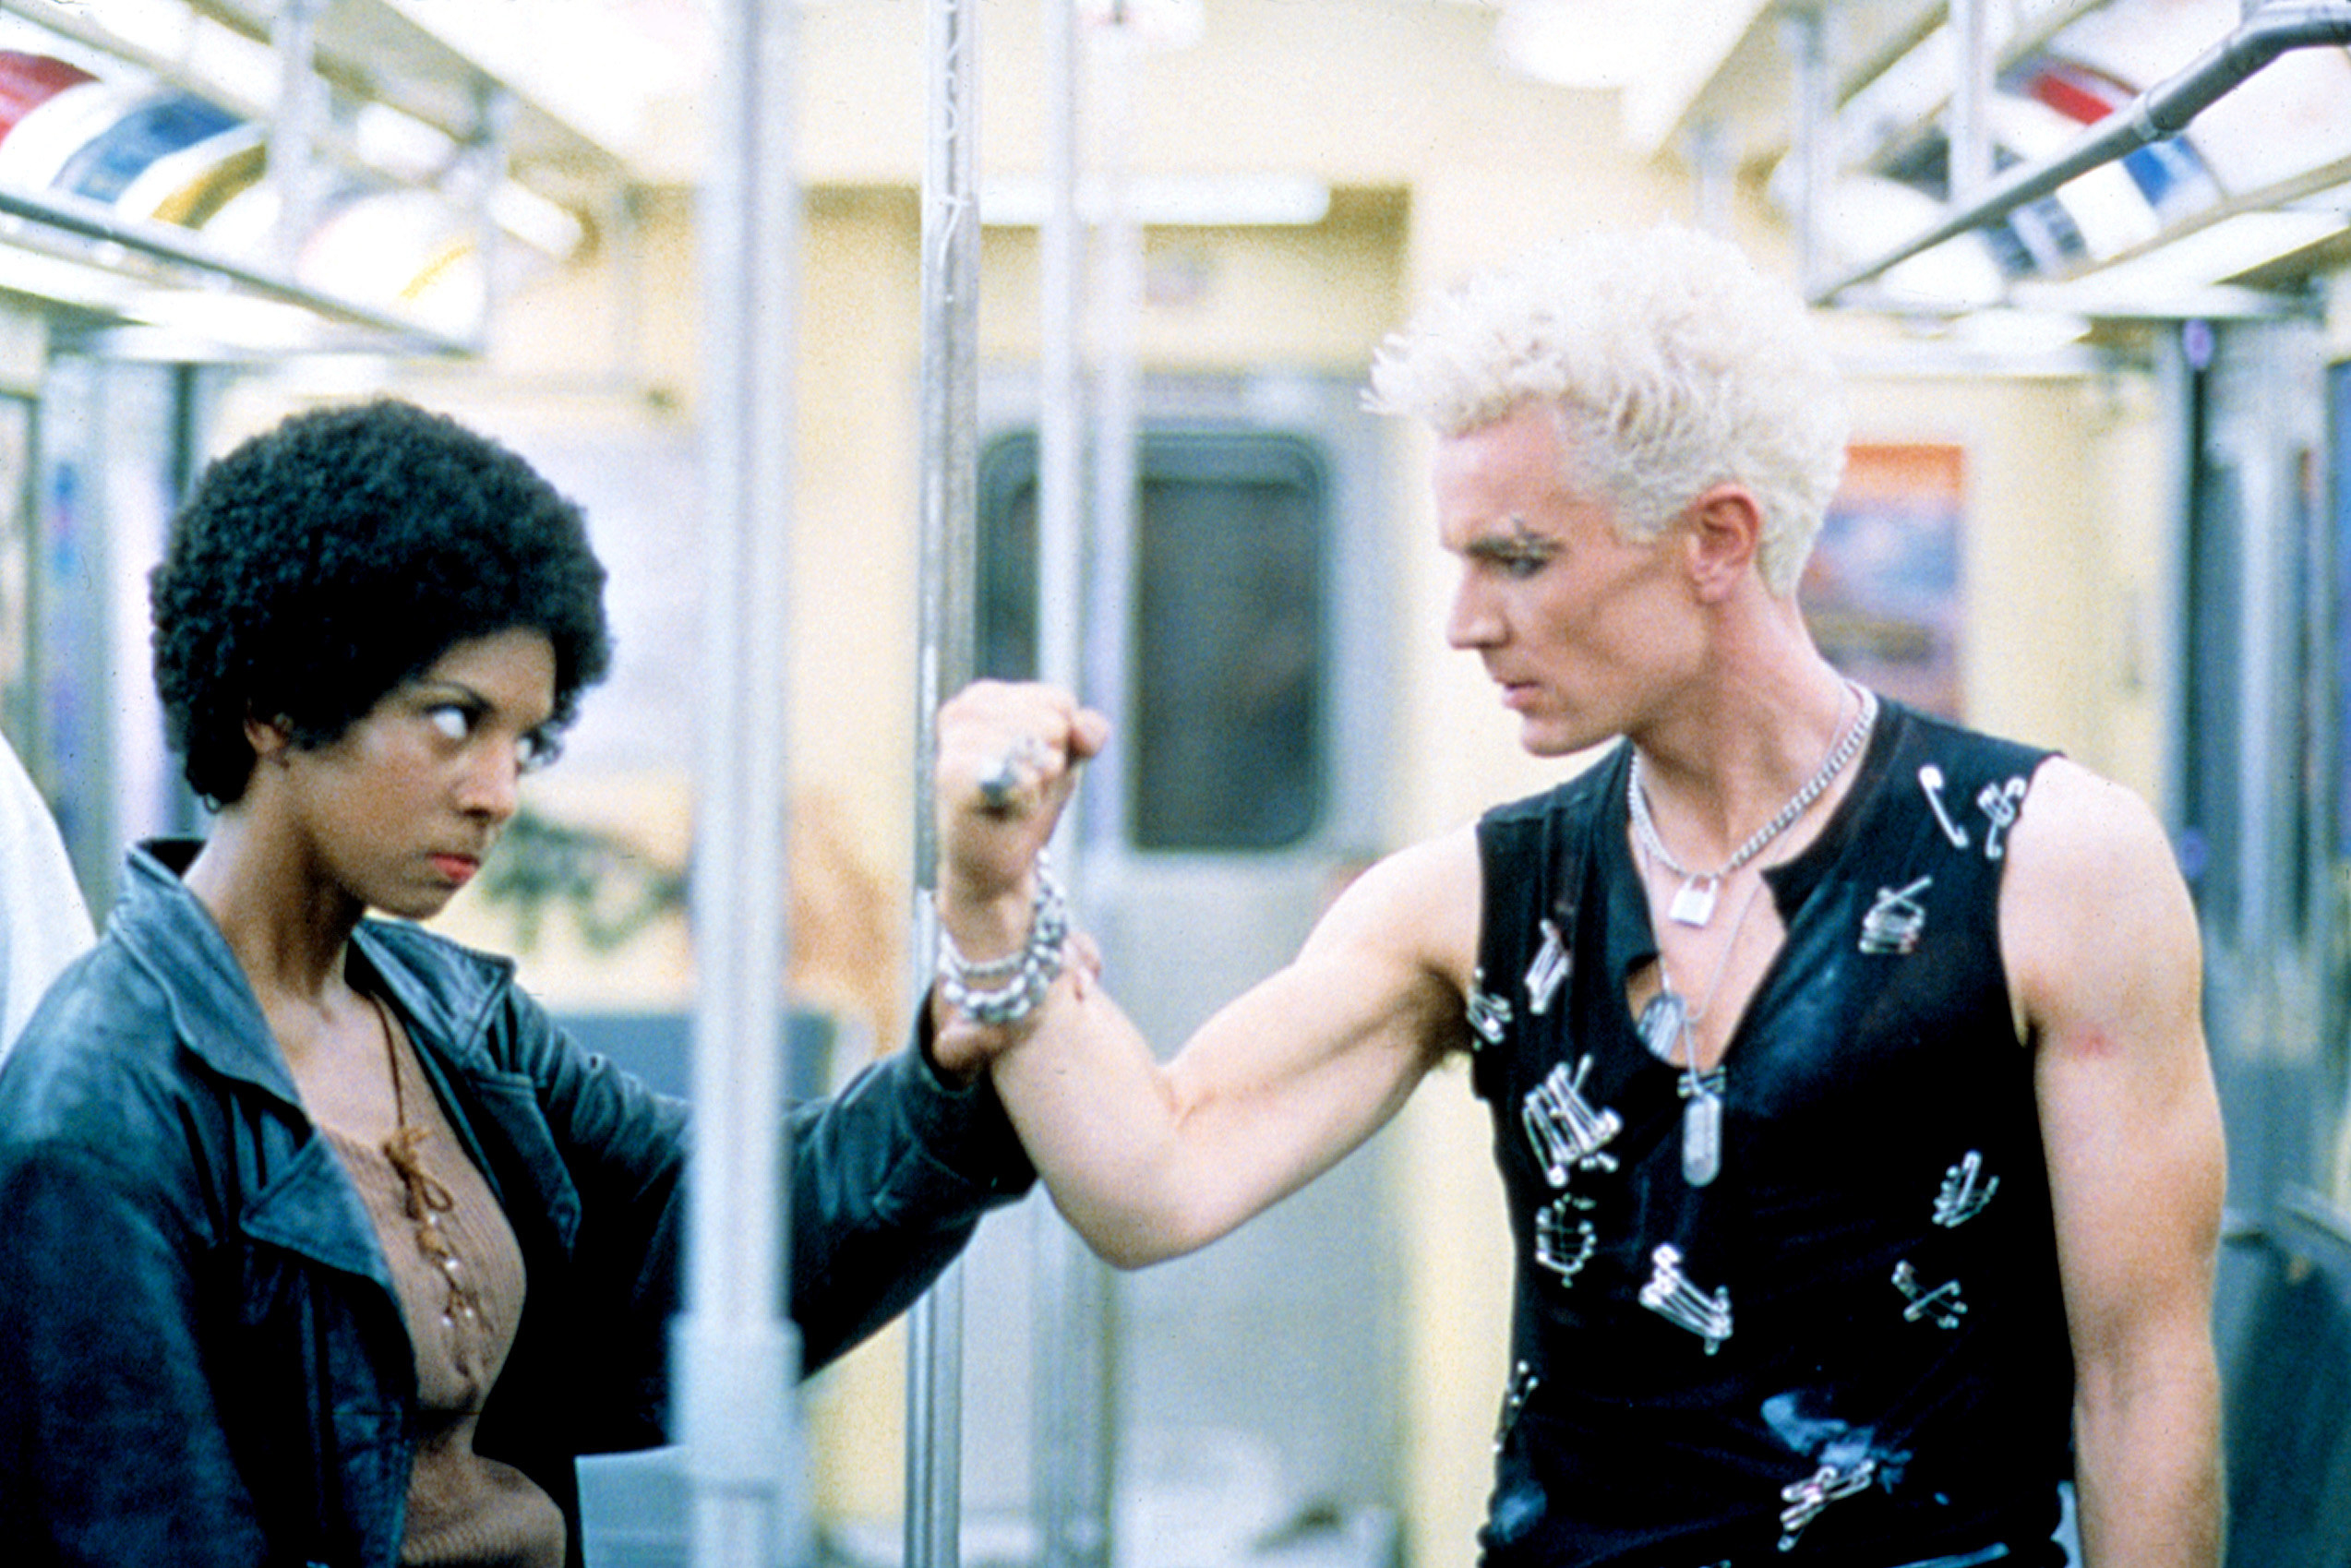 Spike fights a slayer in a subway car